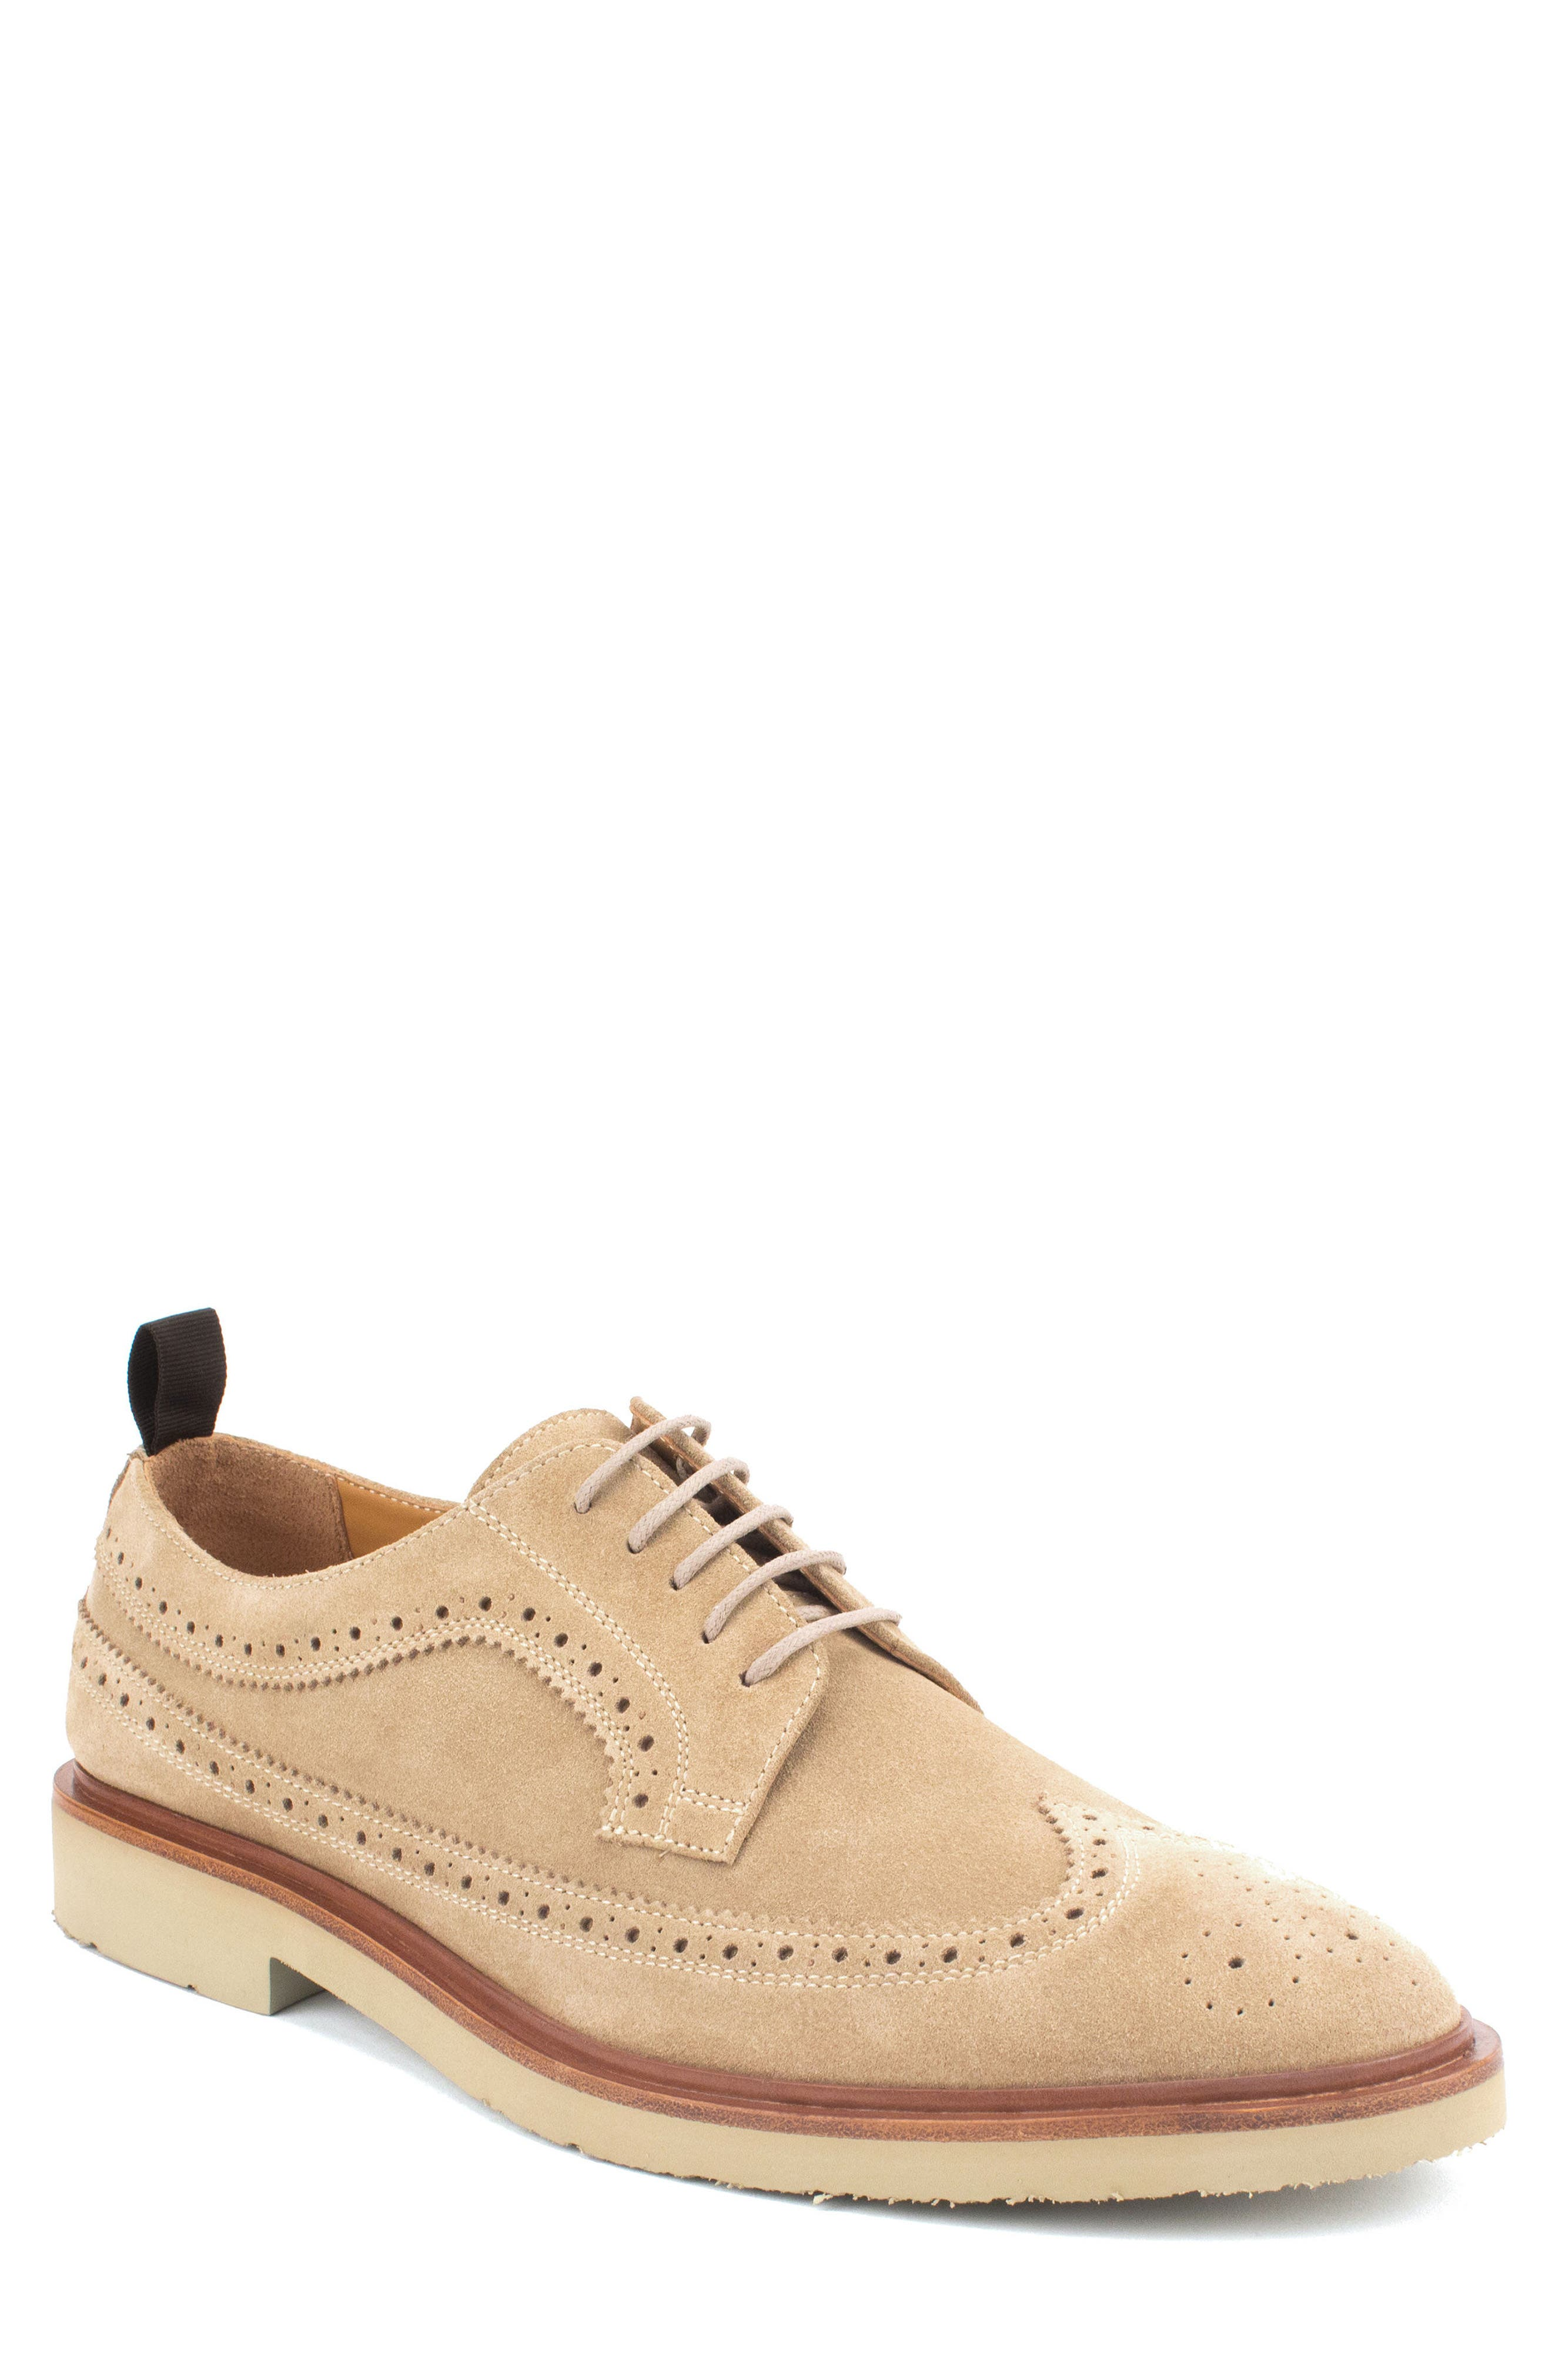 7880d6905cb Gordon Rush - Men s Casual Fashion Shoes and Sneakers